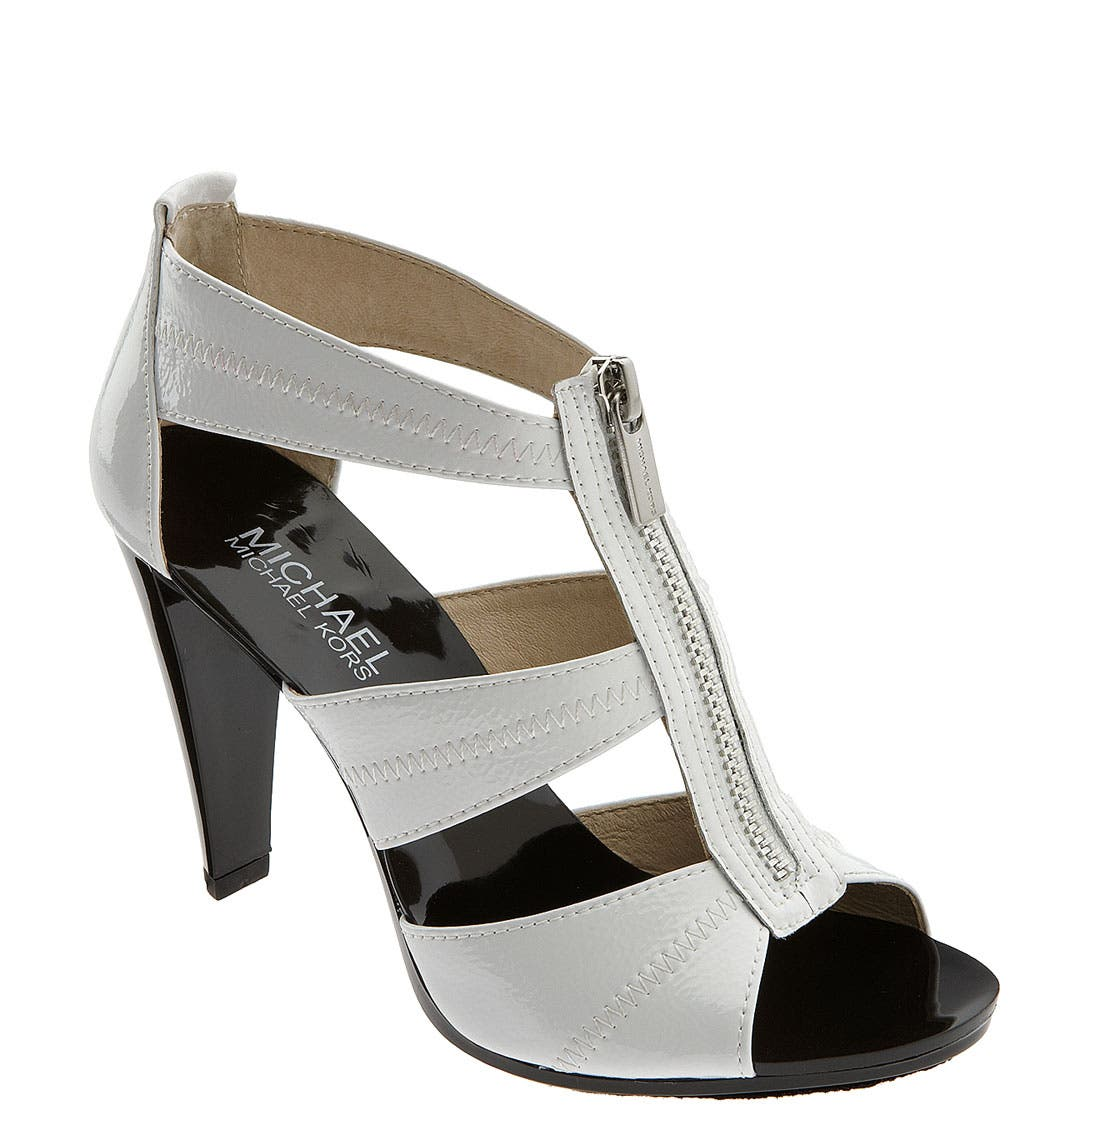 'Berkley' Sandal,                         Main,                         color, White Patent